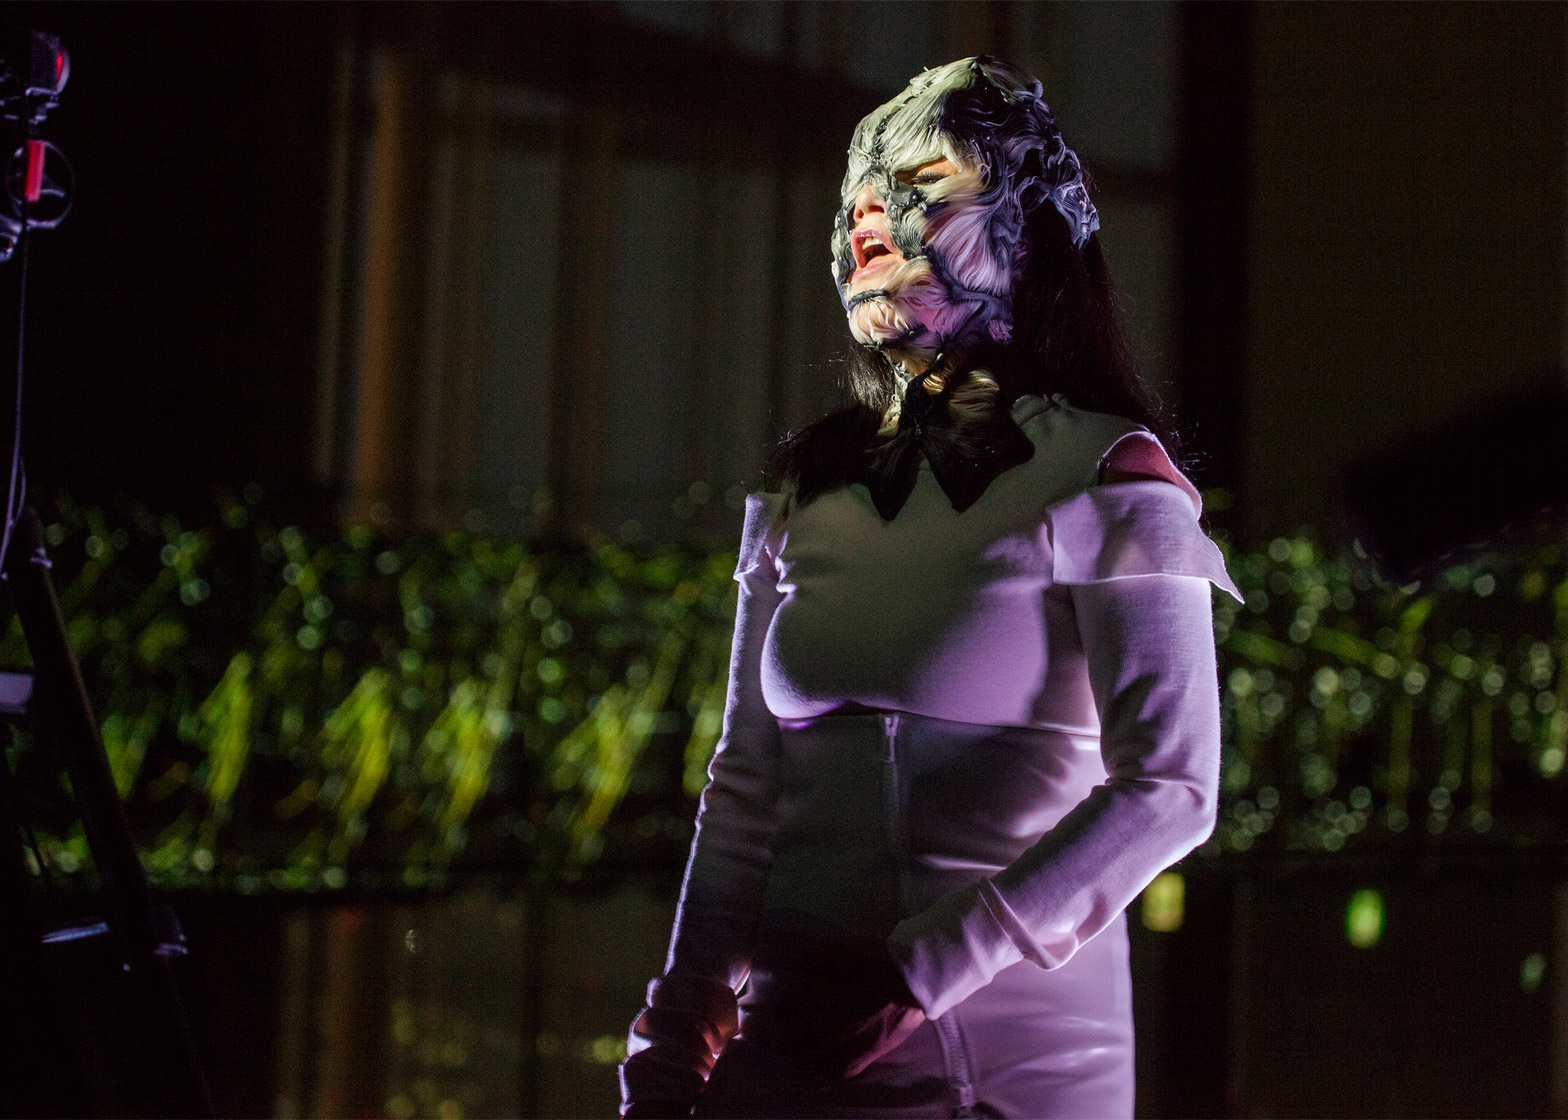 Bjork teams up with designer Neri Oxman to create a 3D printed mask